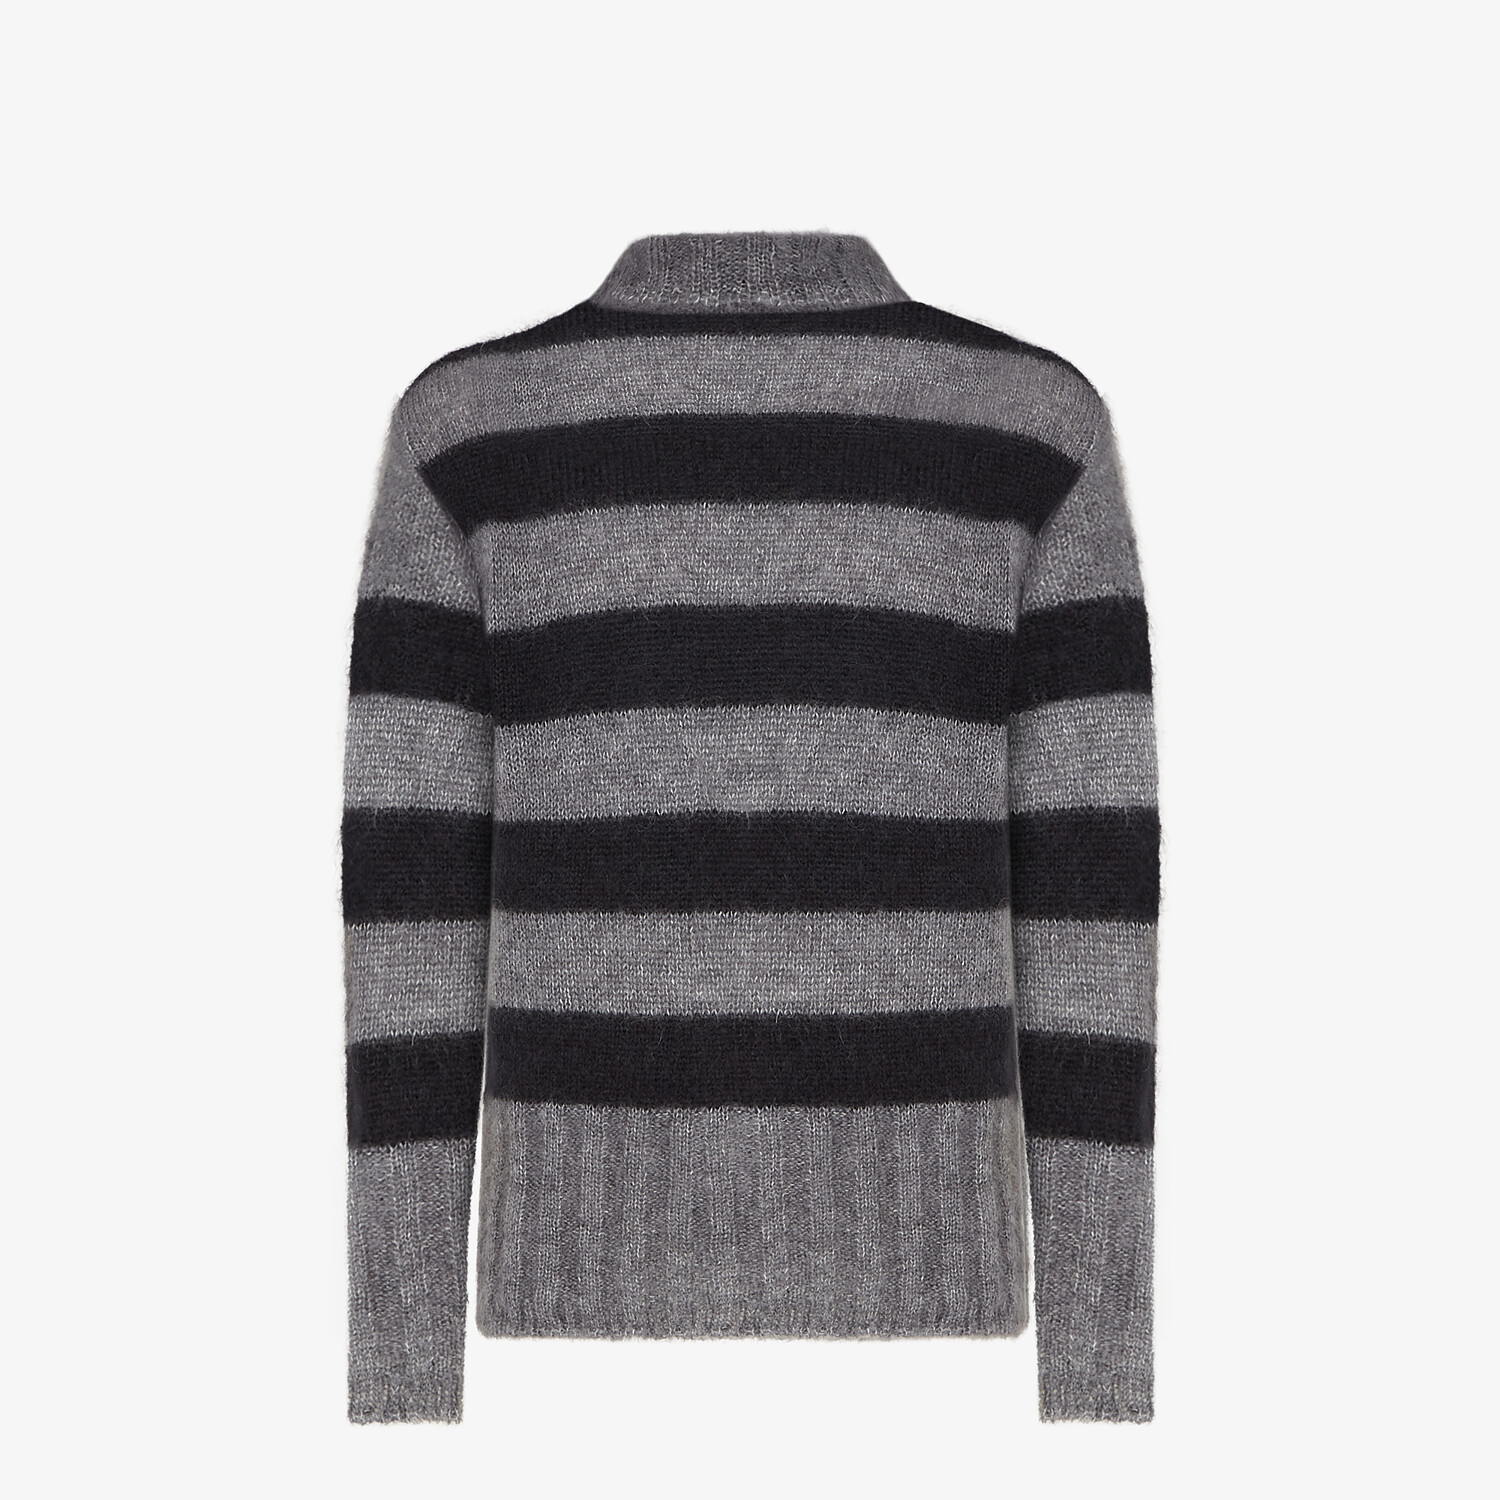 FENDI PULLOVER - Multicolor mohair pullover - view 2 detail